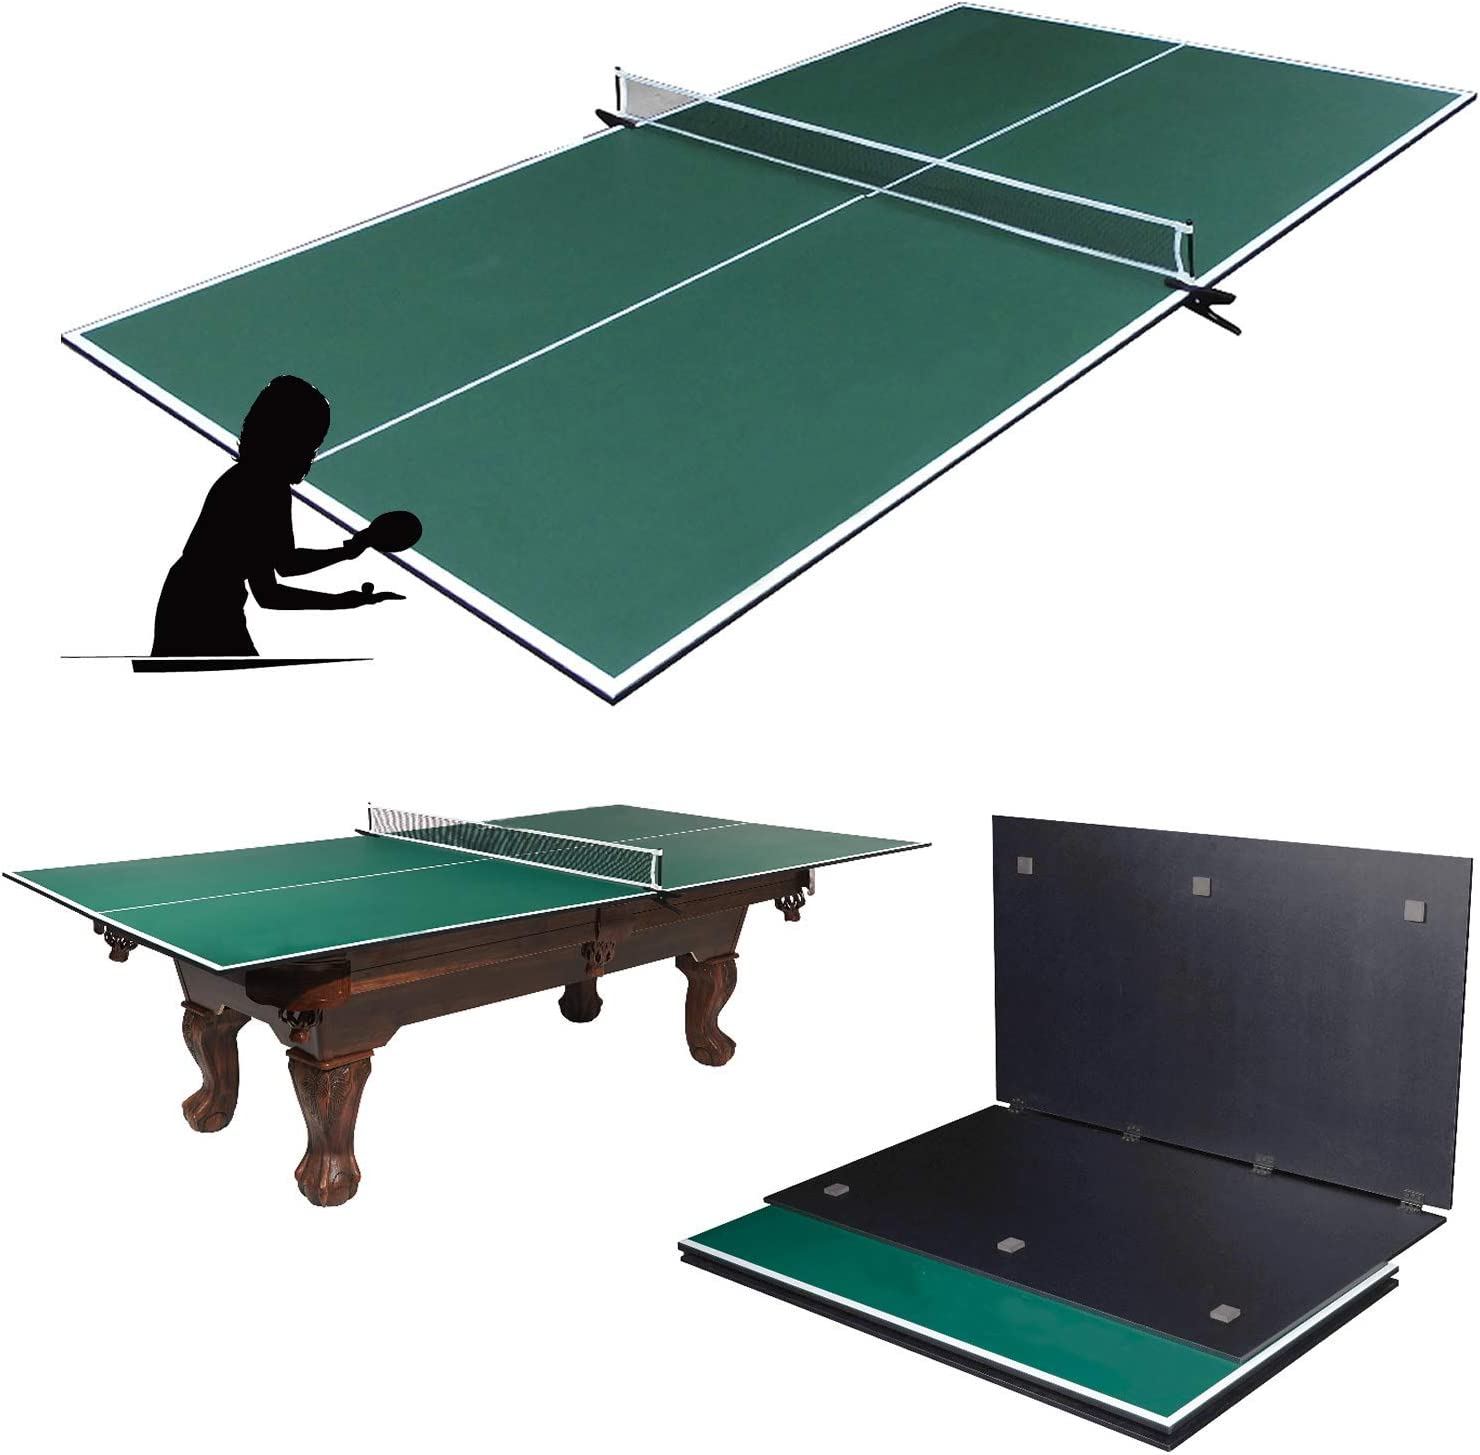 Picotech Ping Pong Table Topper for Pool Table Indoor Table Tennis Conversion Top 4 Piece Foldable with Clamp Net Post Official Size for Game Room Billiard Table Air Hockey Space Save Home Office